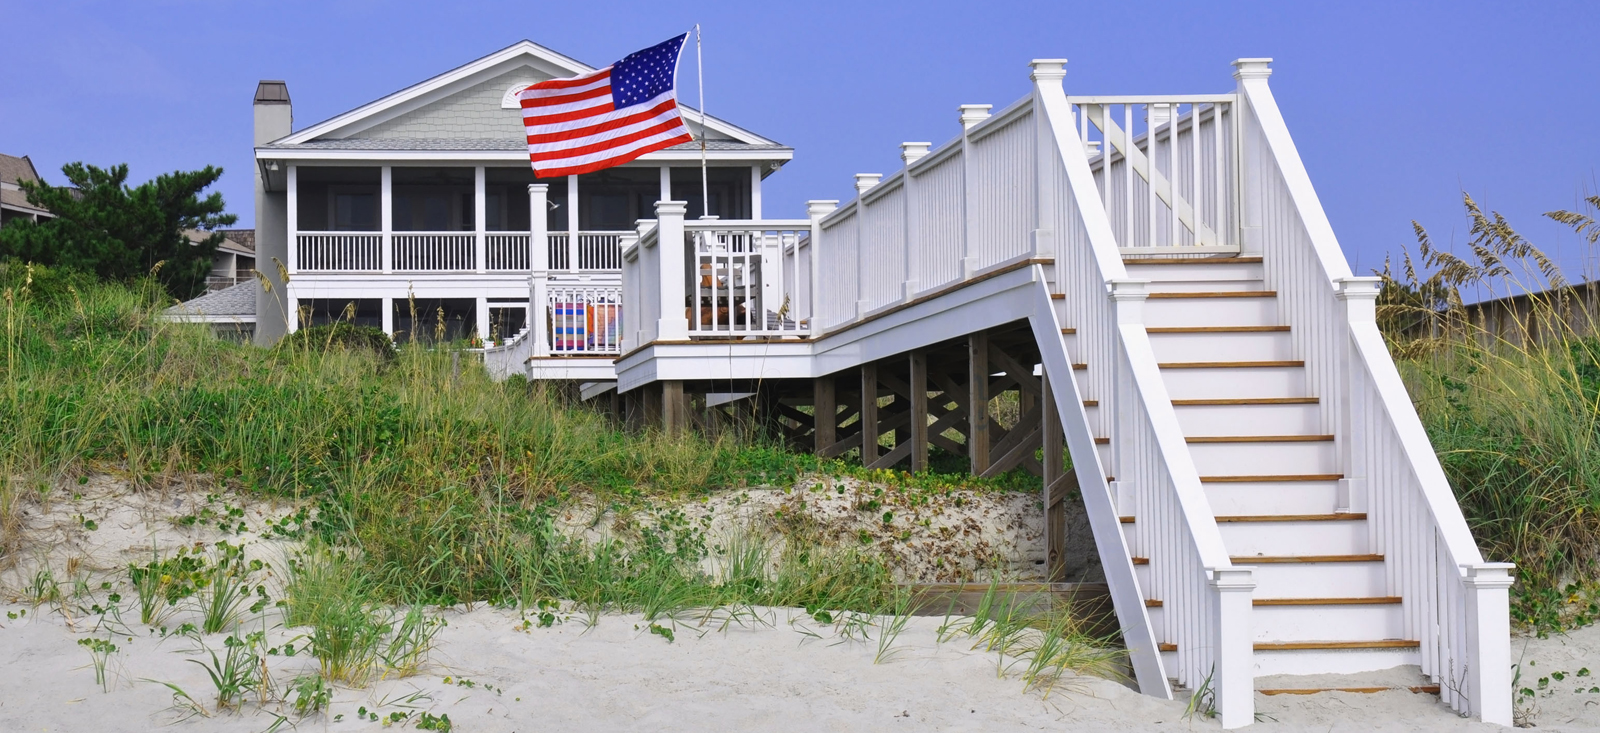 Beach-House-US-Flag